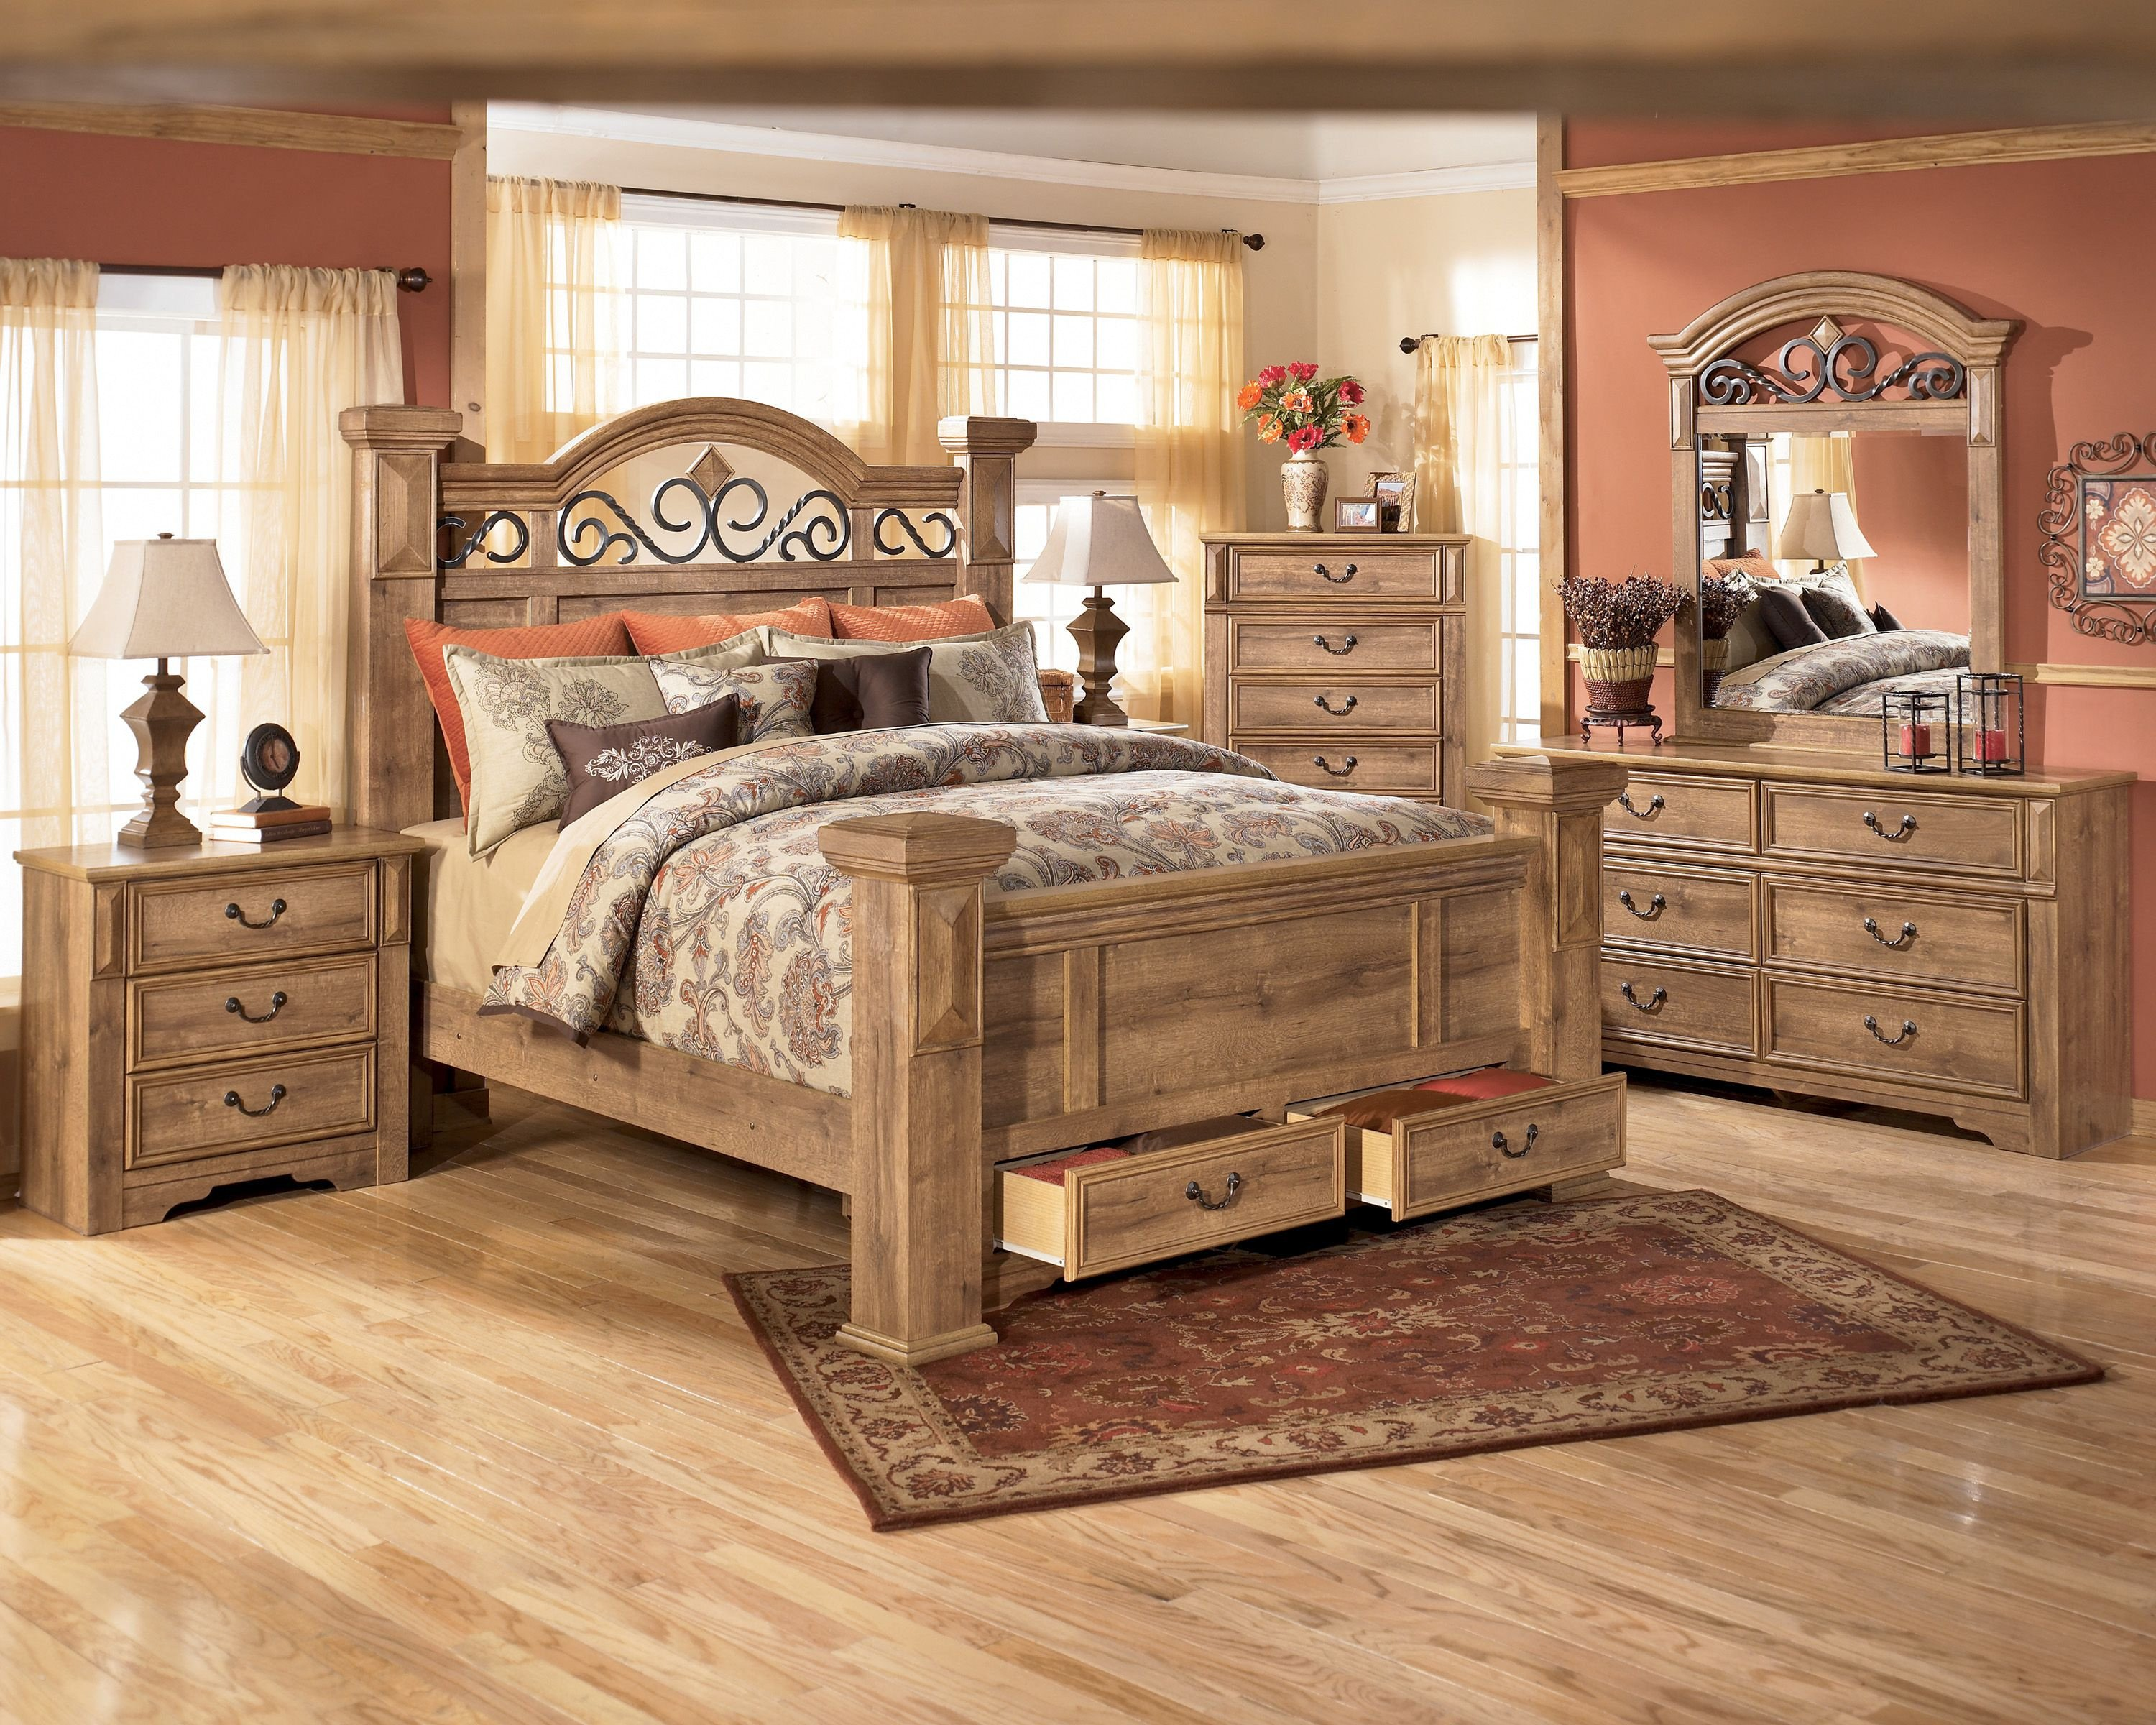 Cheap Queen Size Bedroom Set Inspirational Awesome Awesome Full Size Bed Set 89 Home Decorating